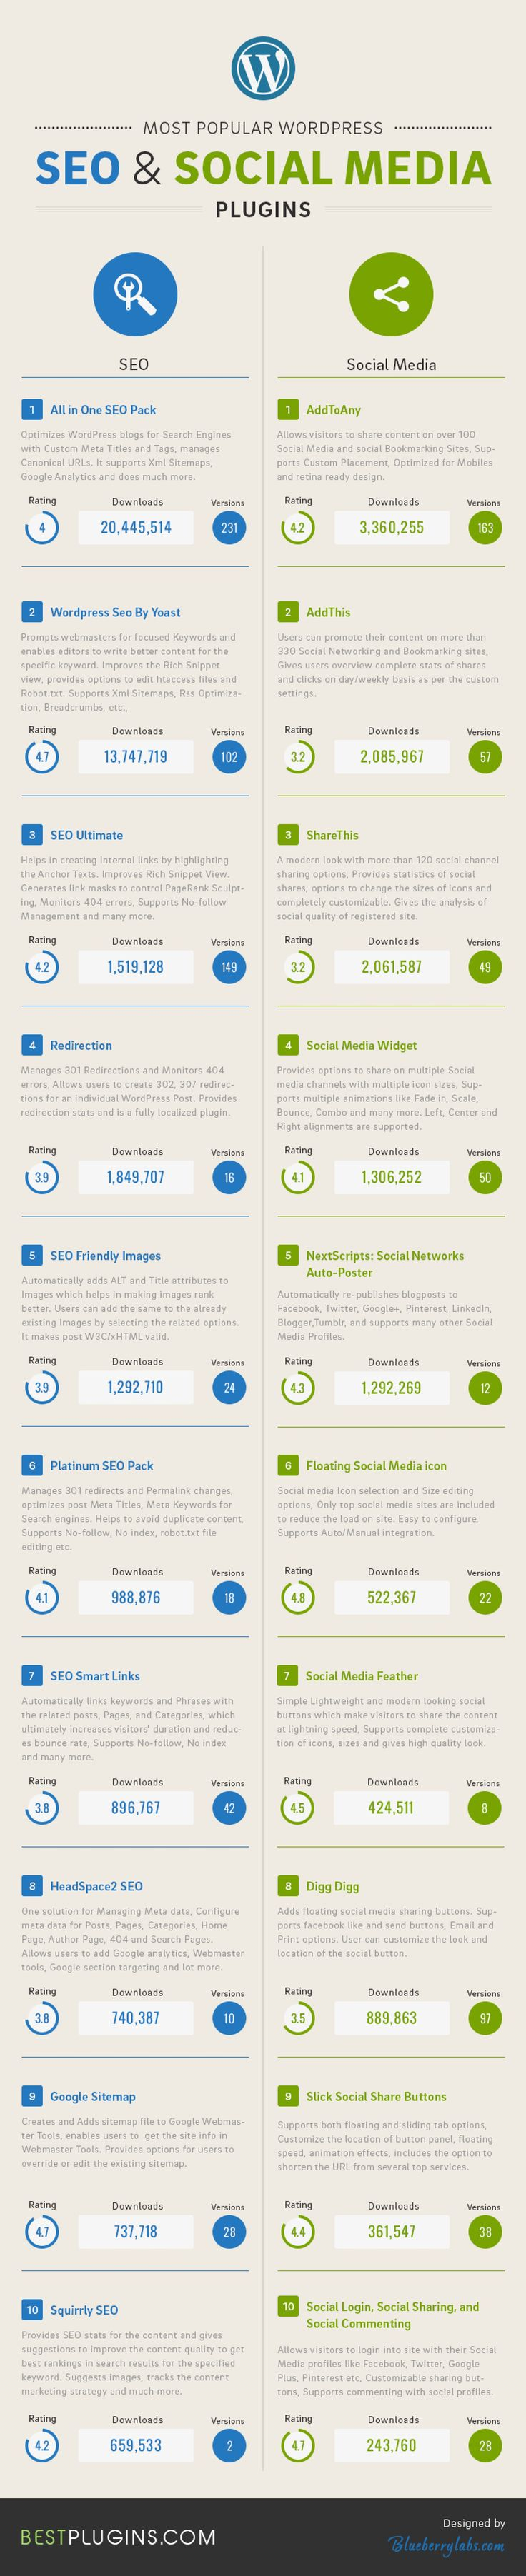 Most Famous Seo and Social Media Plugins Infographic